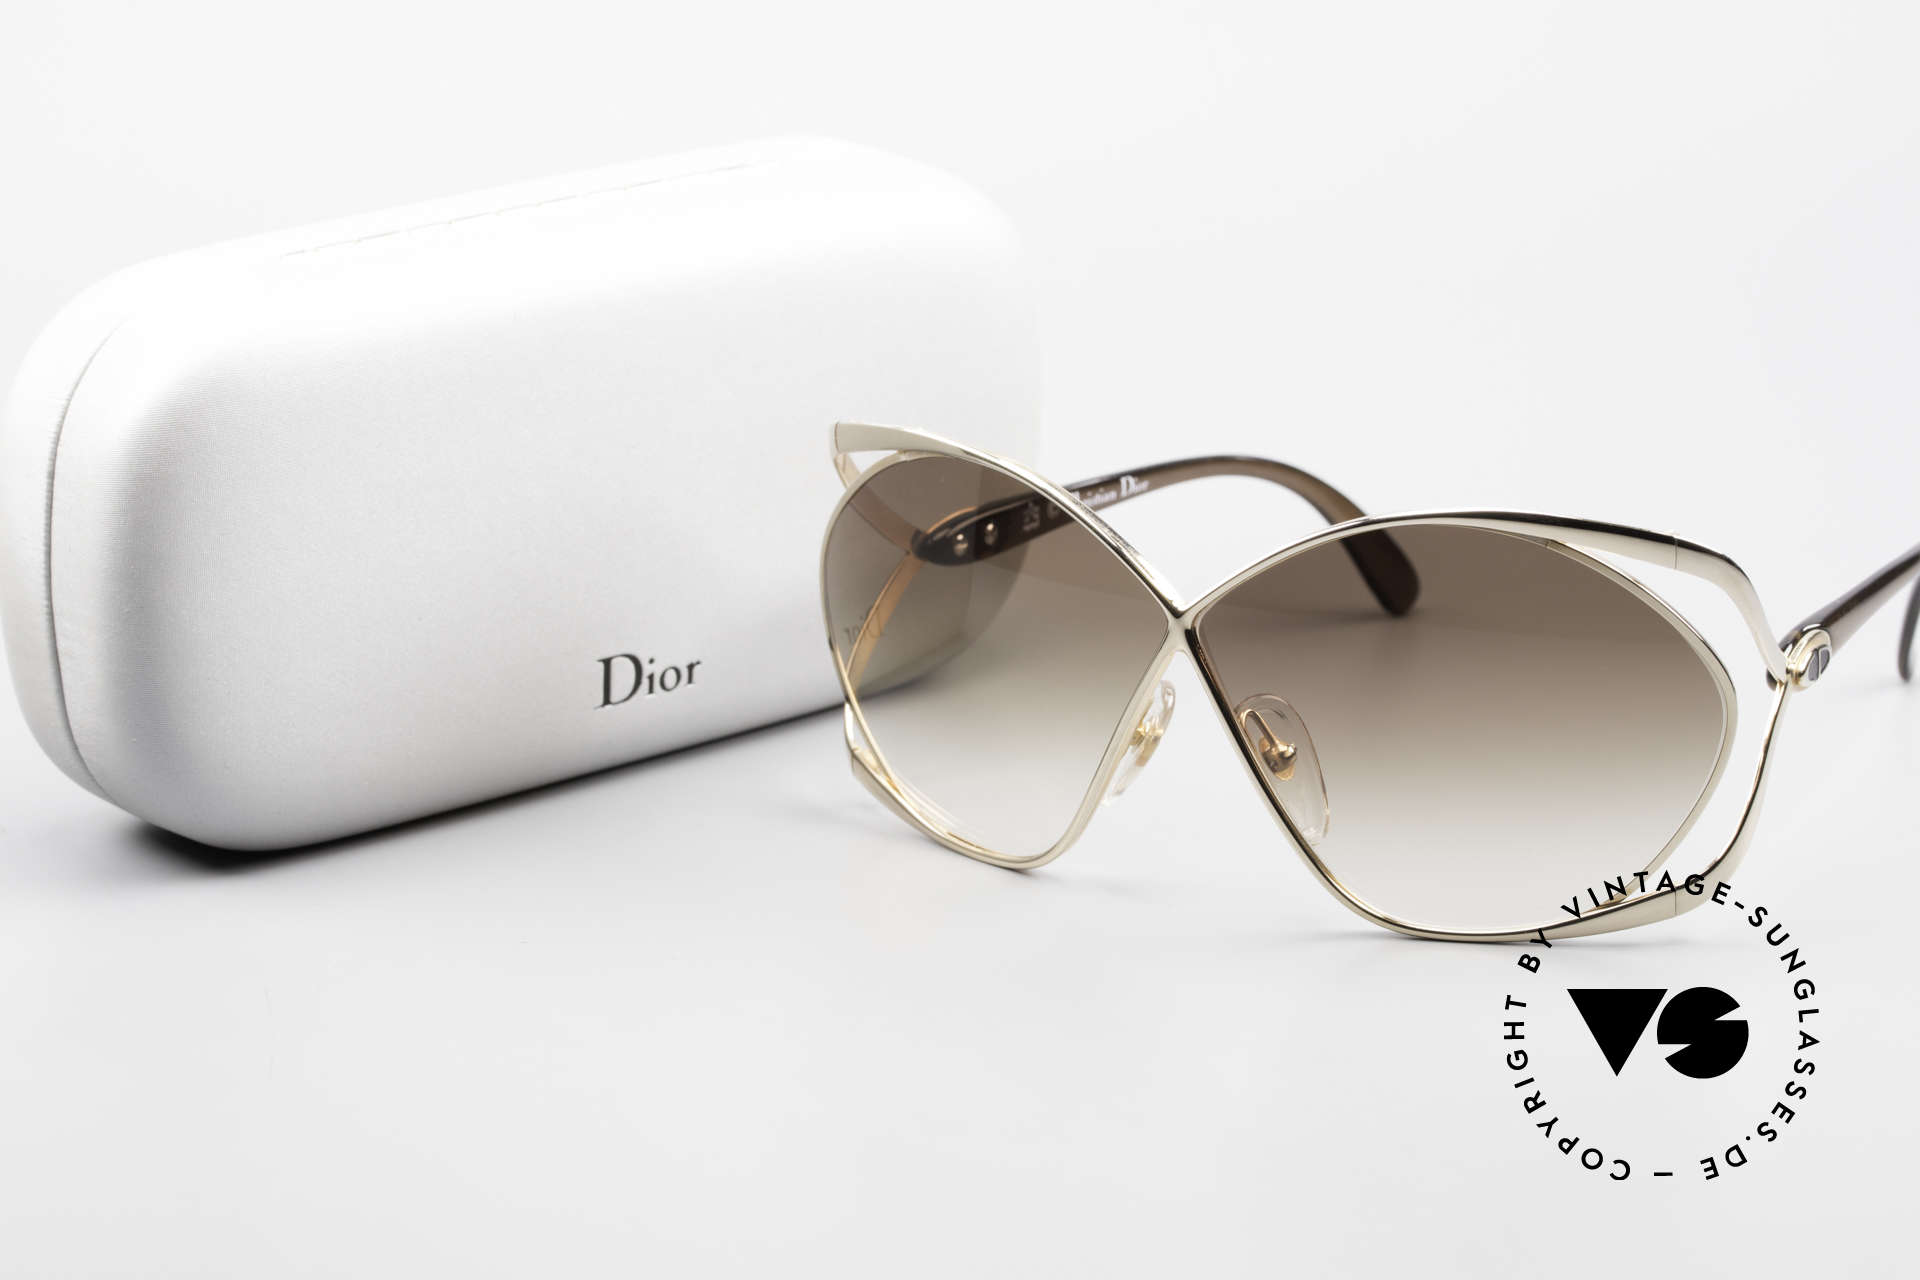 Christian Dior 2056 Butterfly 80's Sunglasses, Size: small, Made for Women